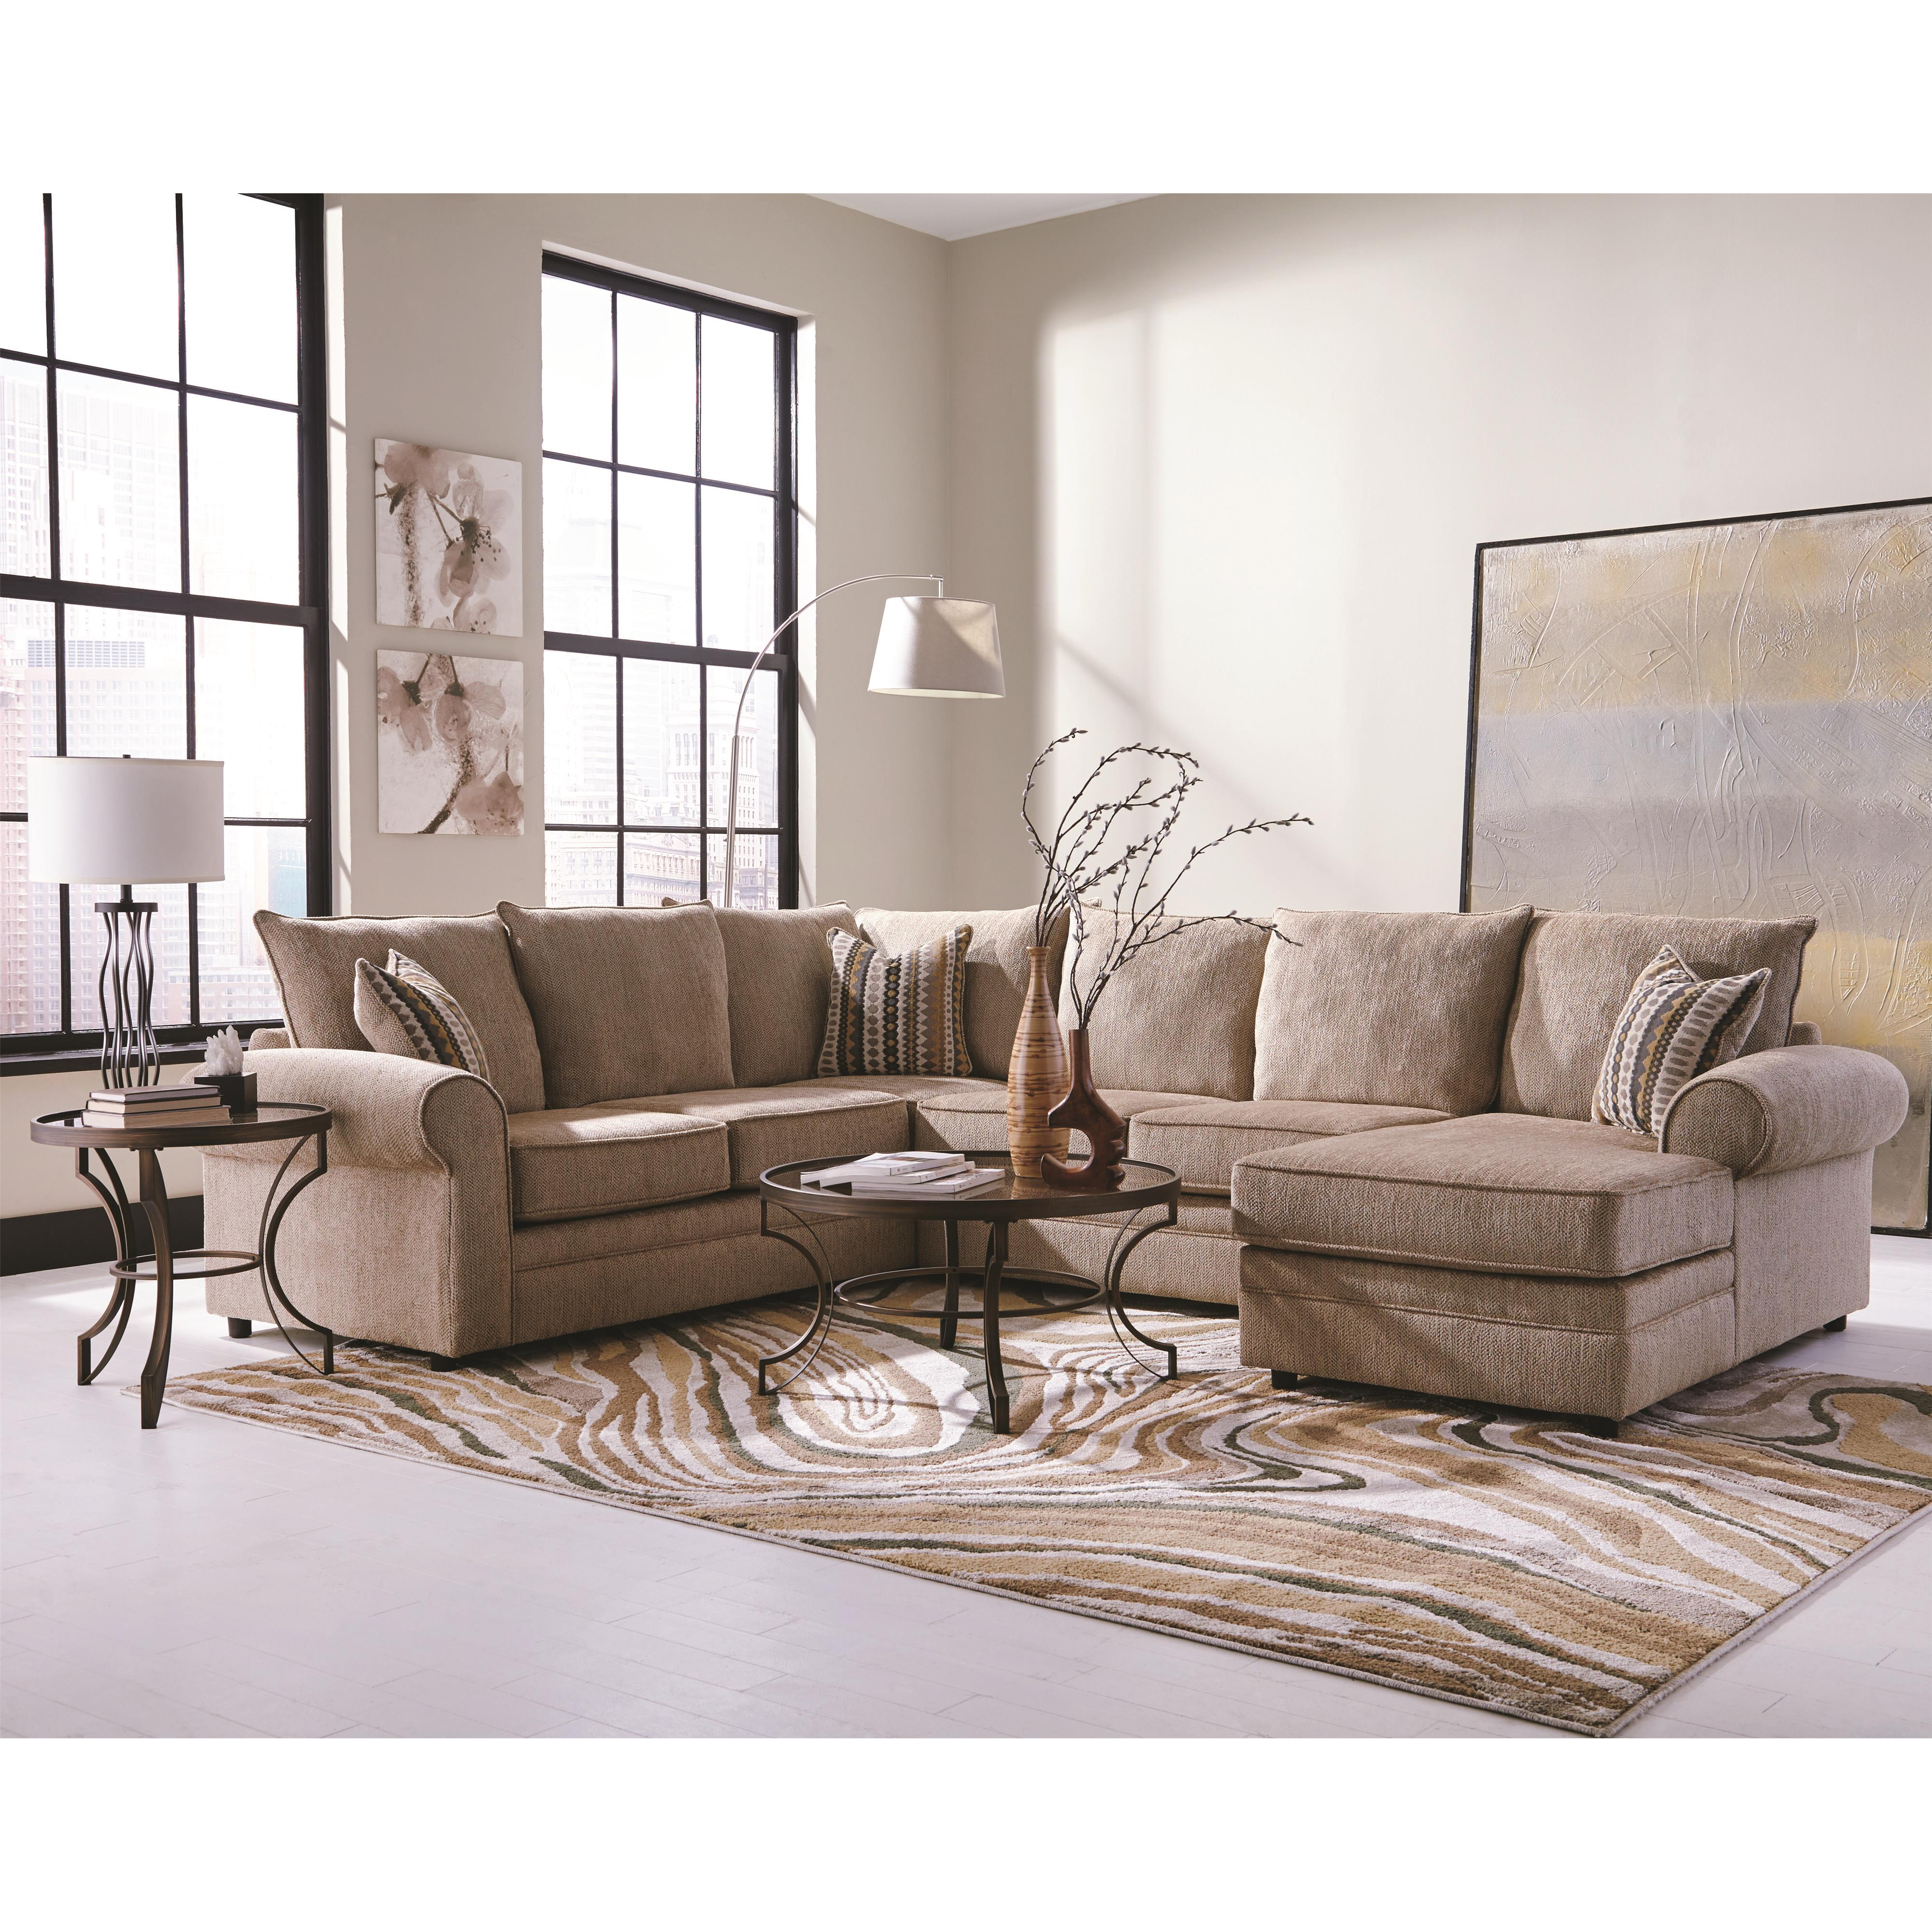 Fairhaven Sectional by Coaster at Northeast Factory Direct